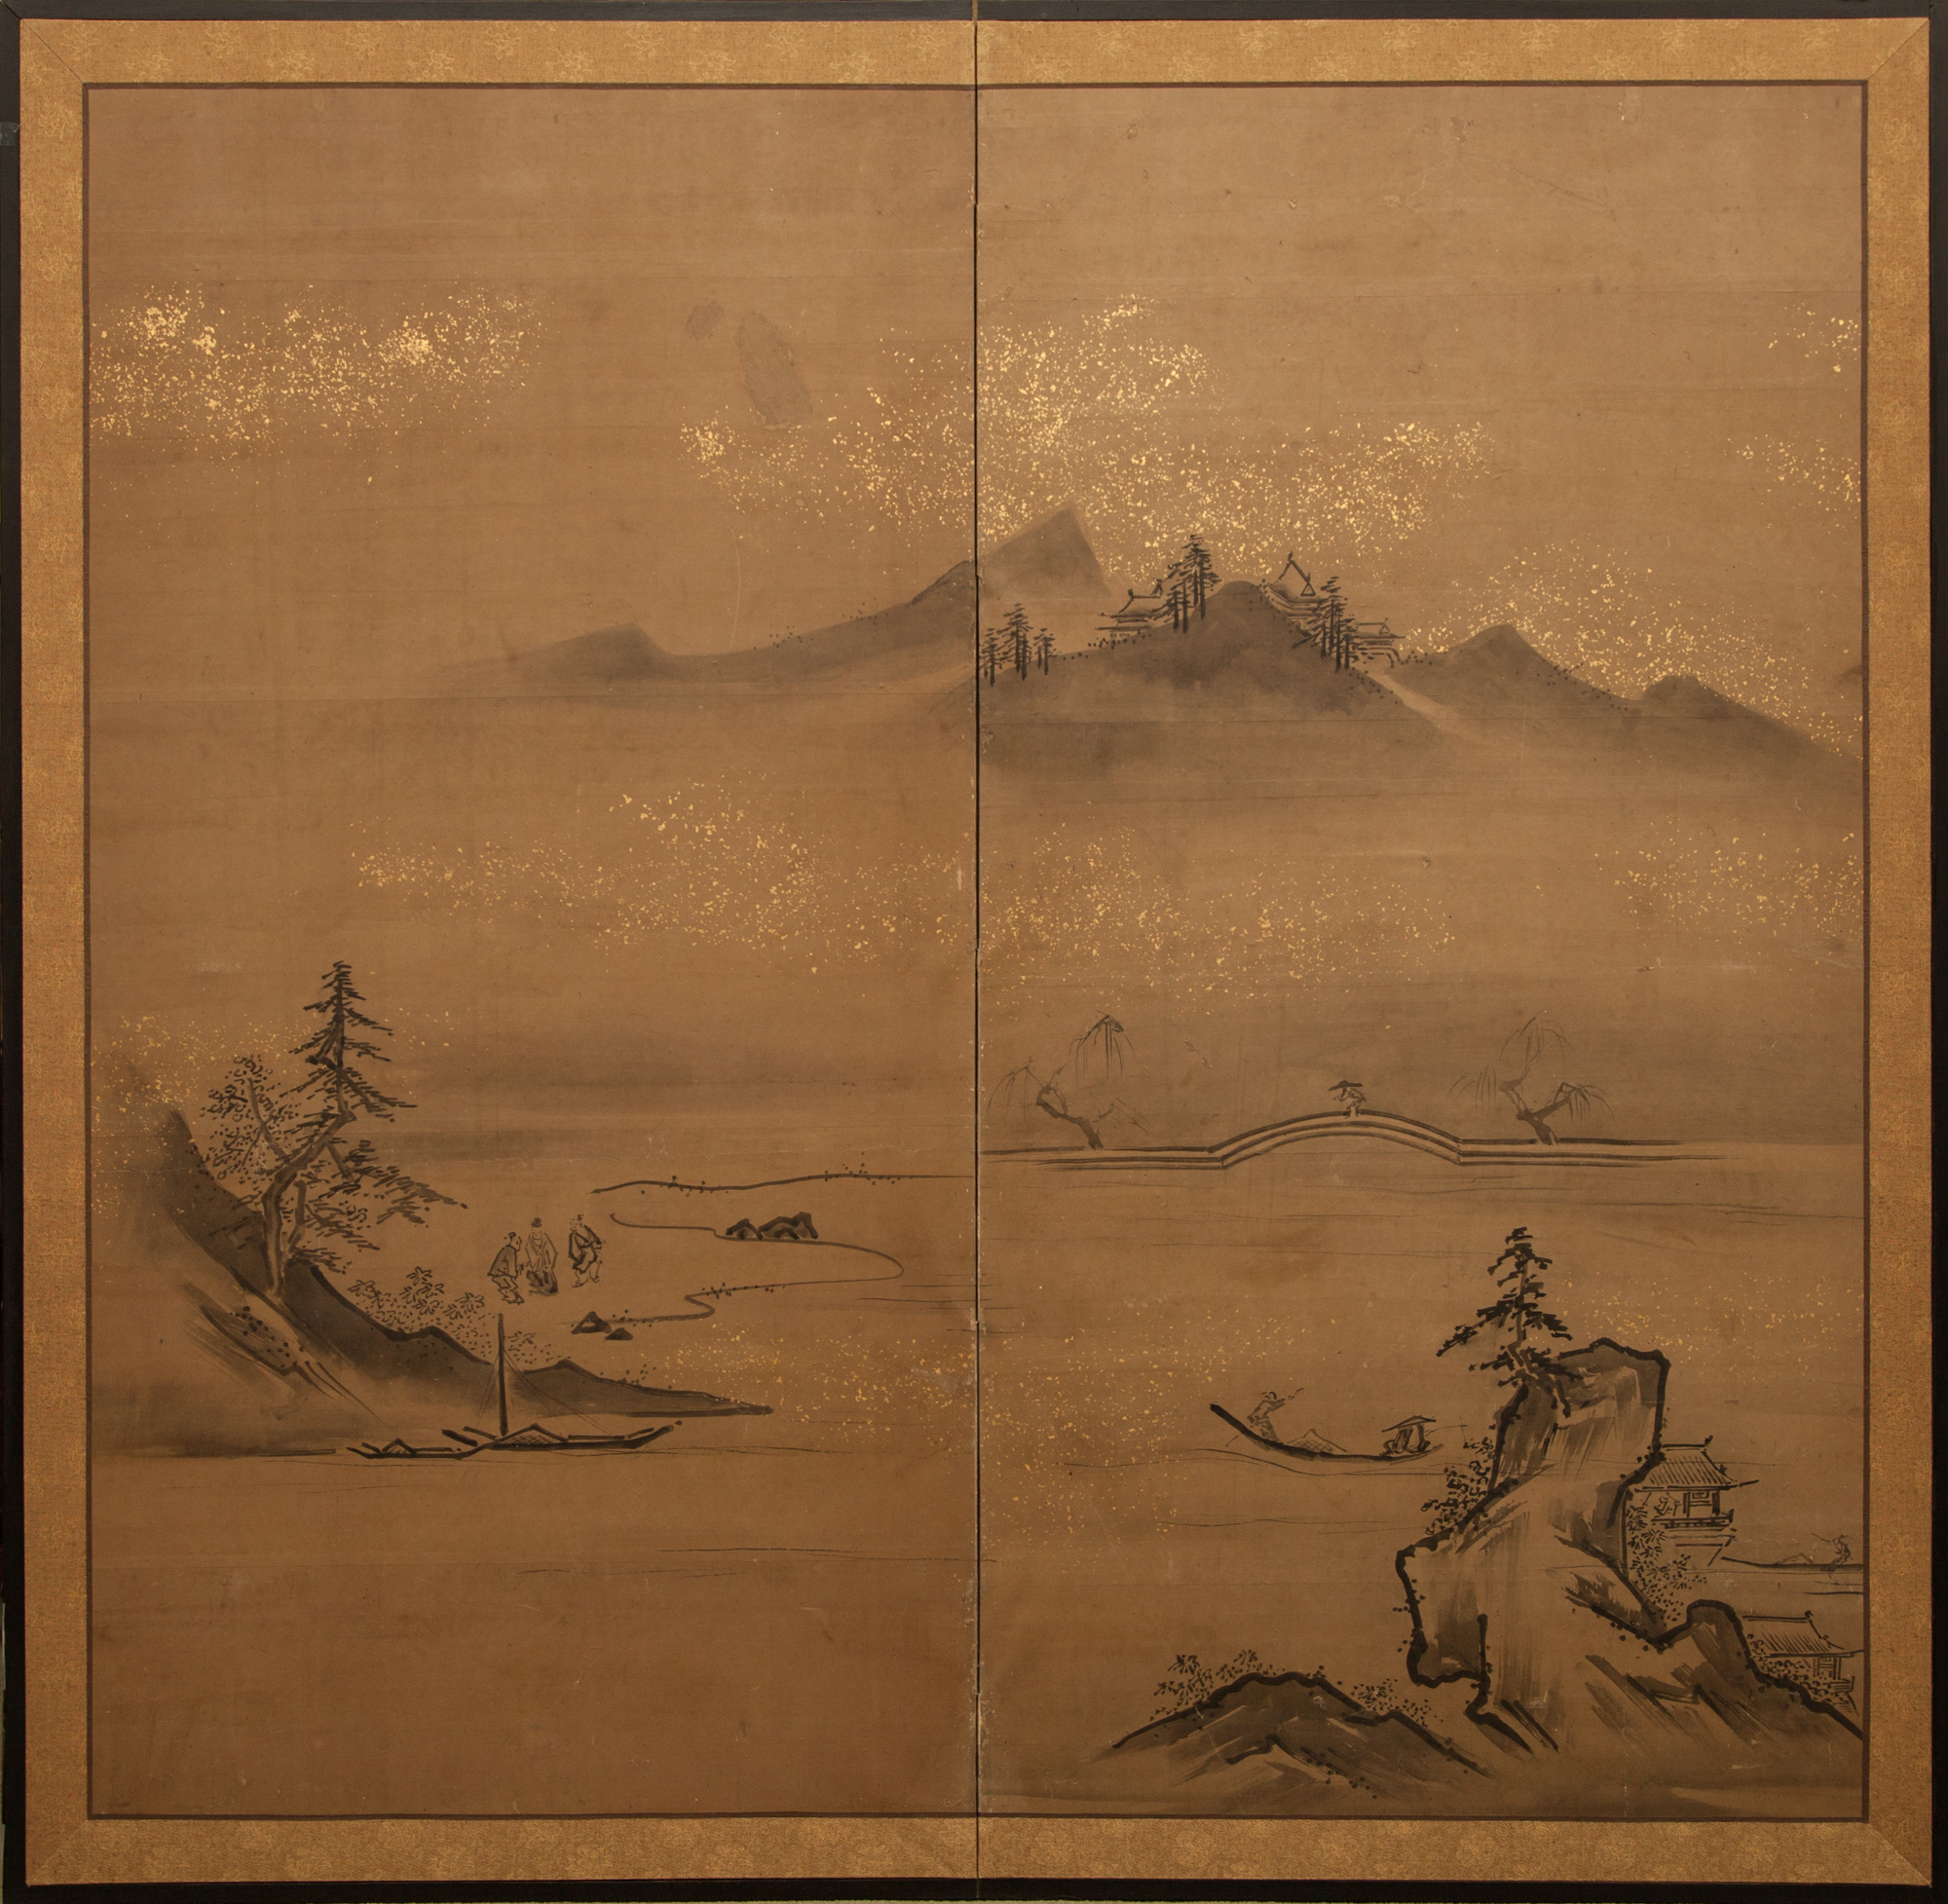 Japanese Two Panel Screen: Ink Landscape on Paper with Gold Dust.